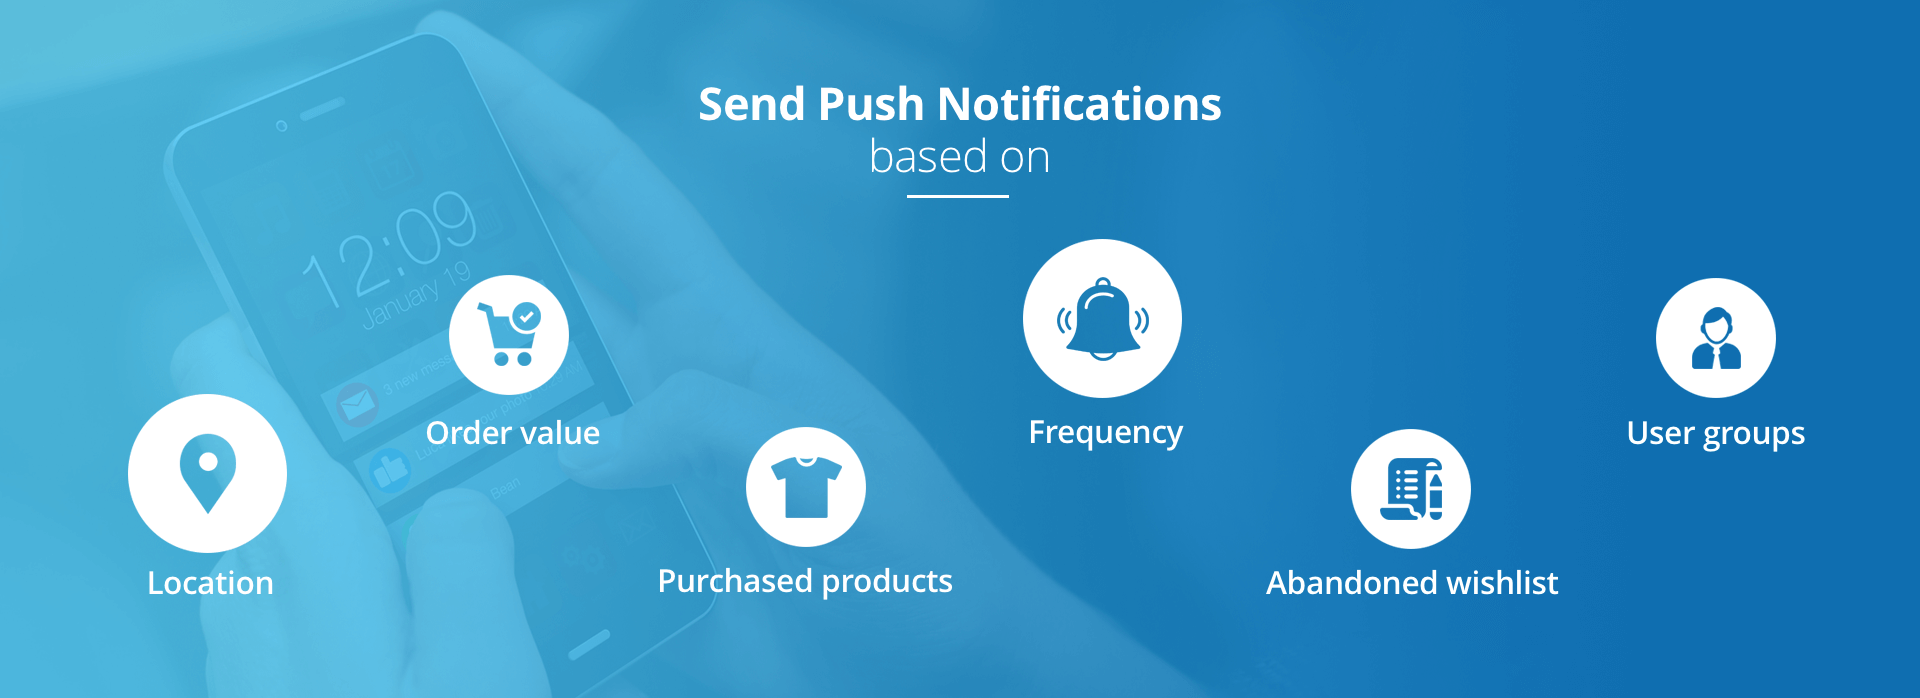 Send Push Notification